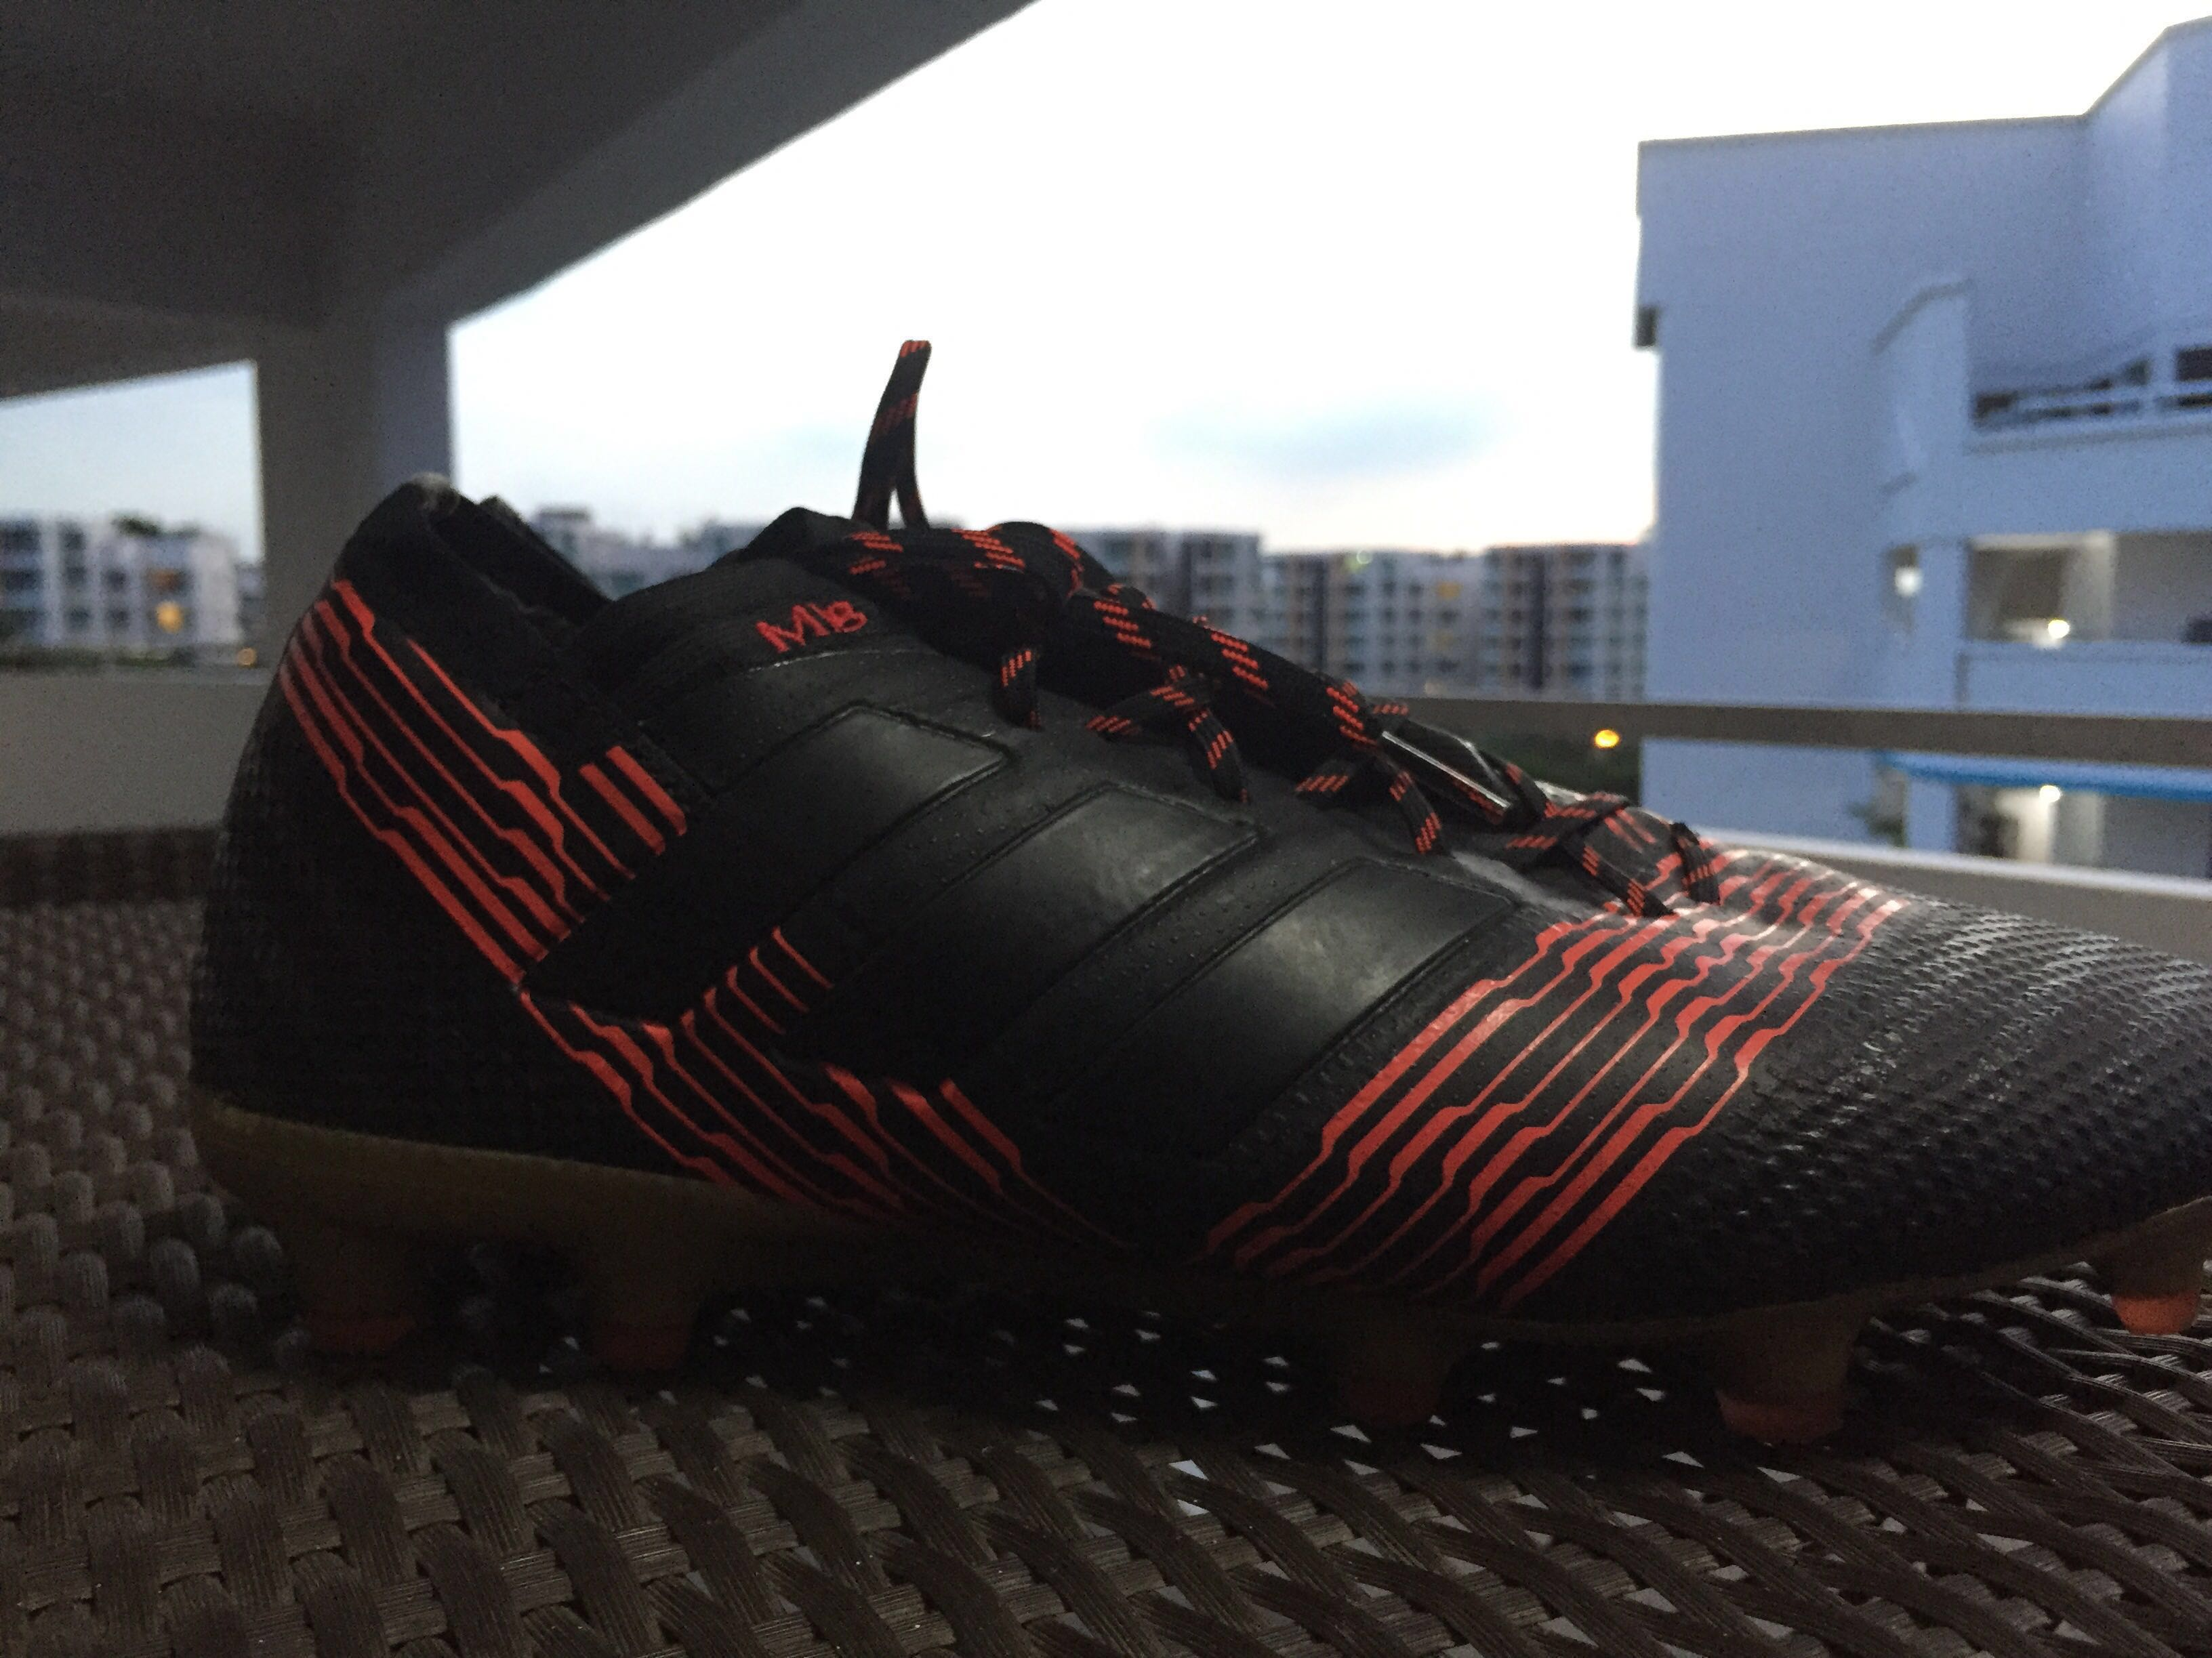 715dc60e7 Adidas NEMEZIS 17.1 Soccer boots, Sports, Sports Apparel on Carousell